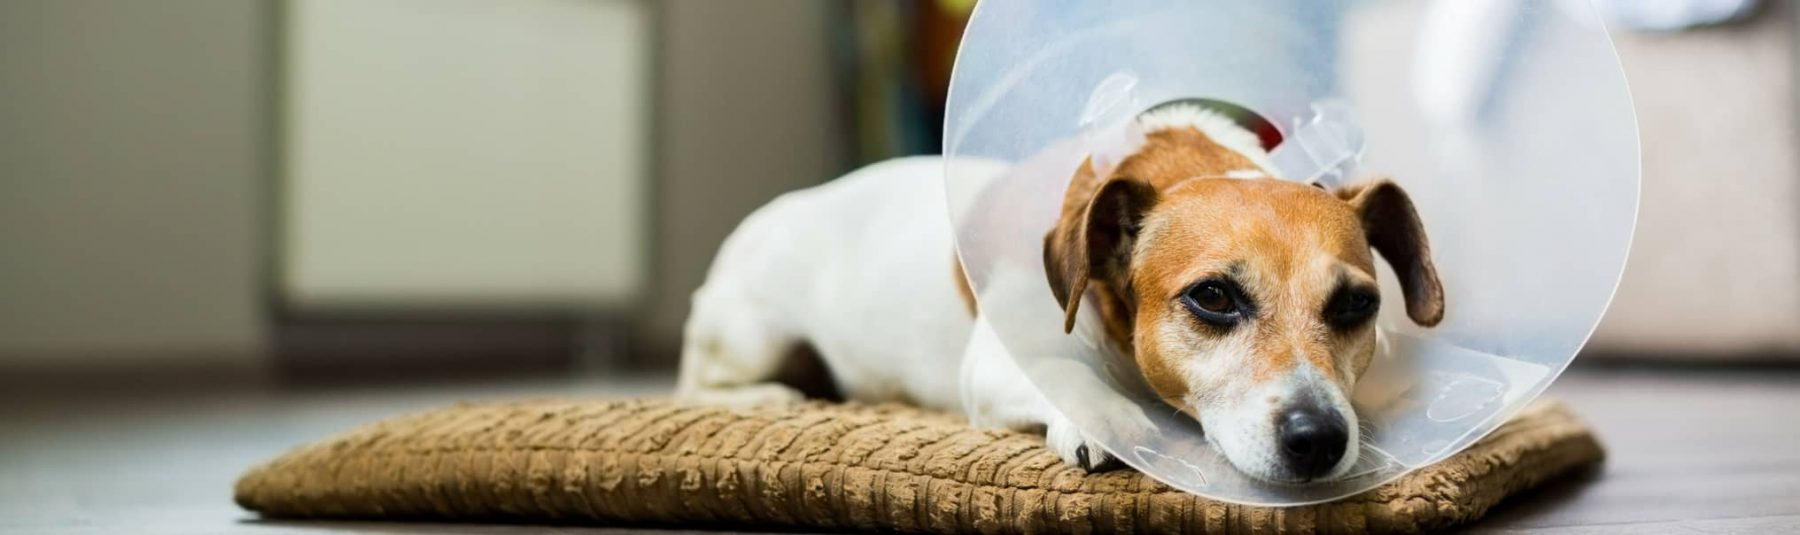 Dog Spaying Services